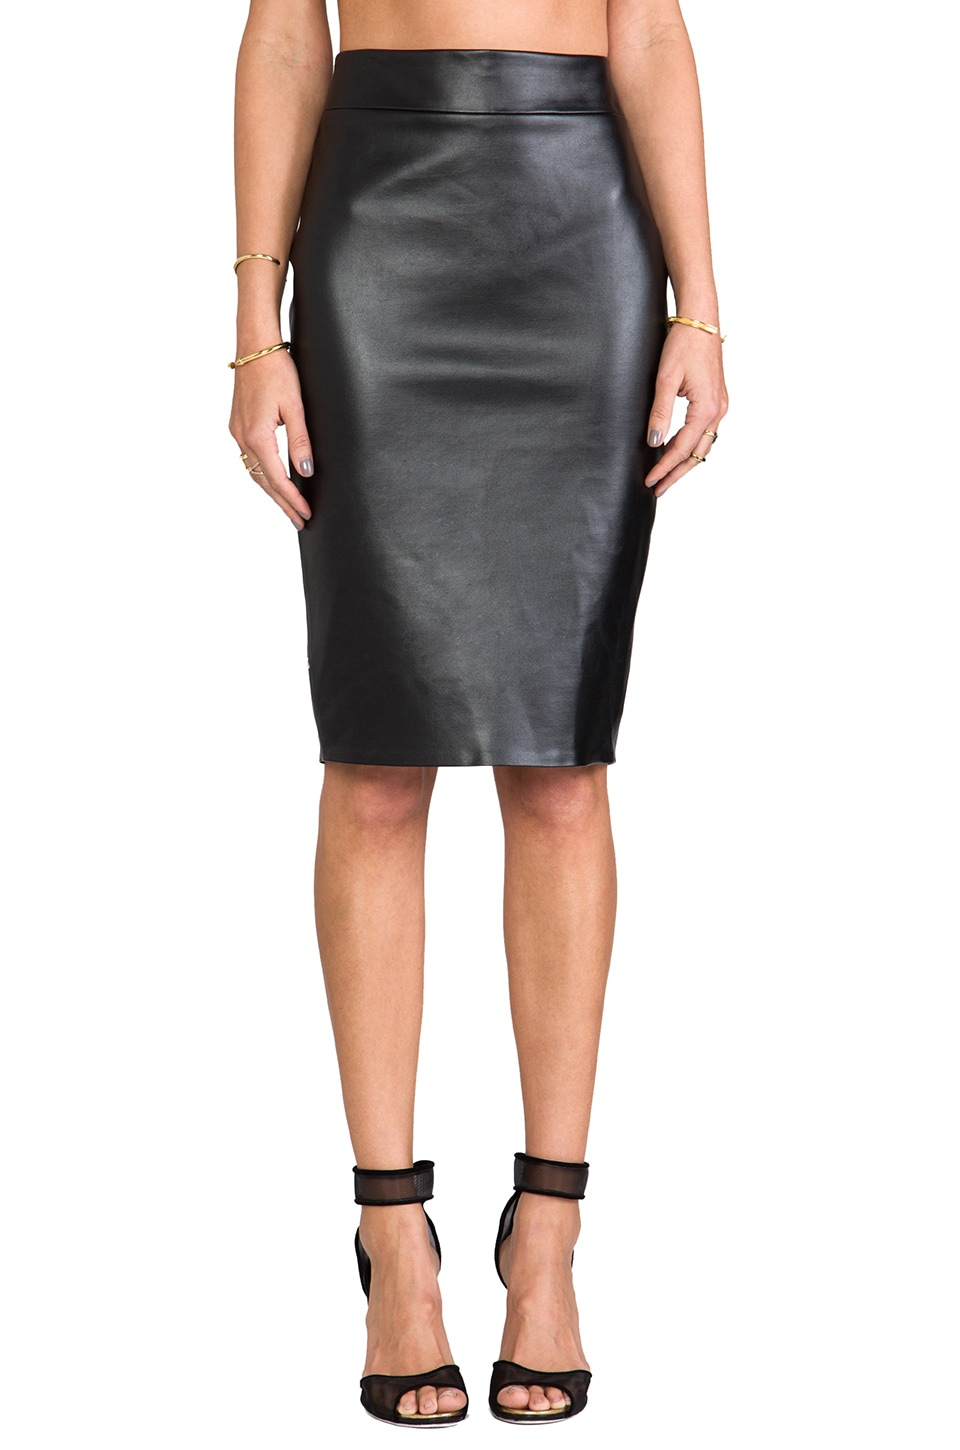 Boulee Monica Vegan Leather Skirt in Black